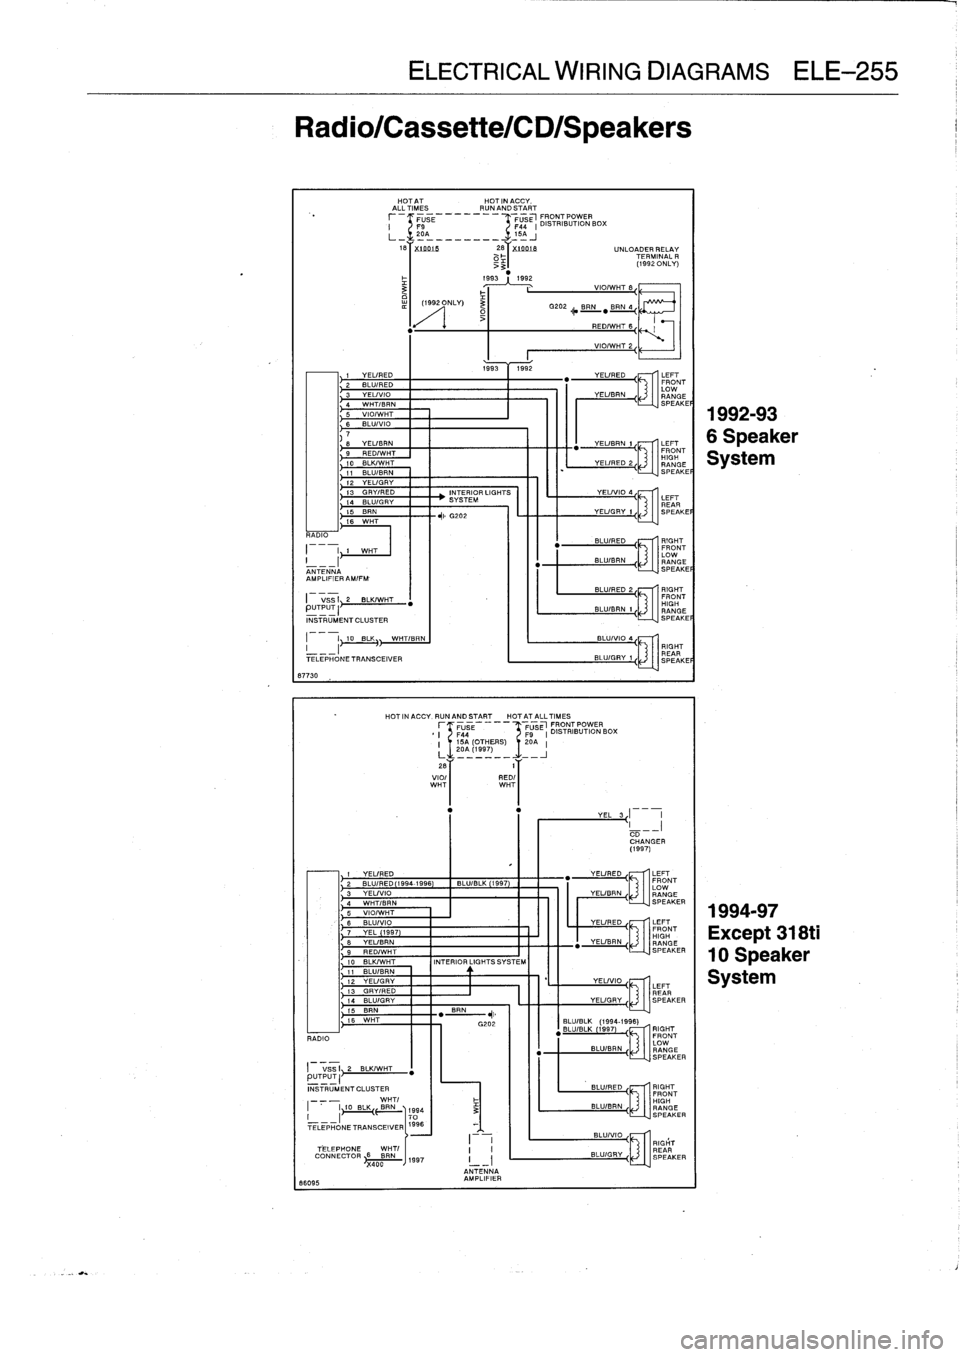 Bmw 323i 1996 E36 Workshop Manual Wiring Diagram